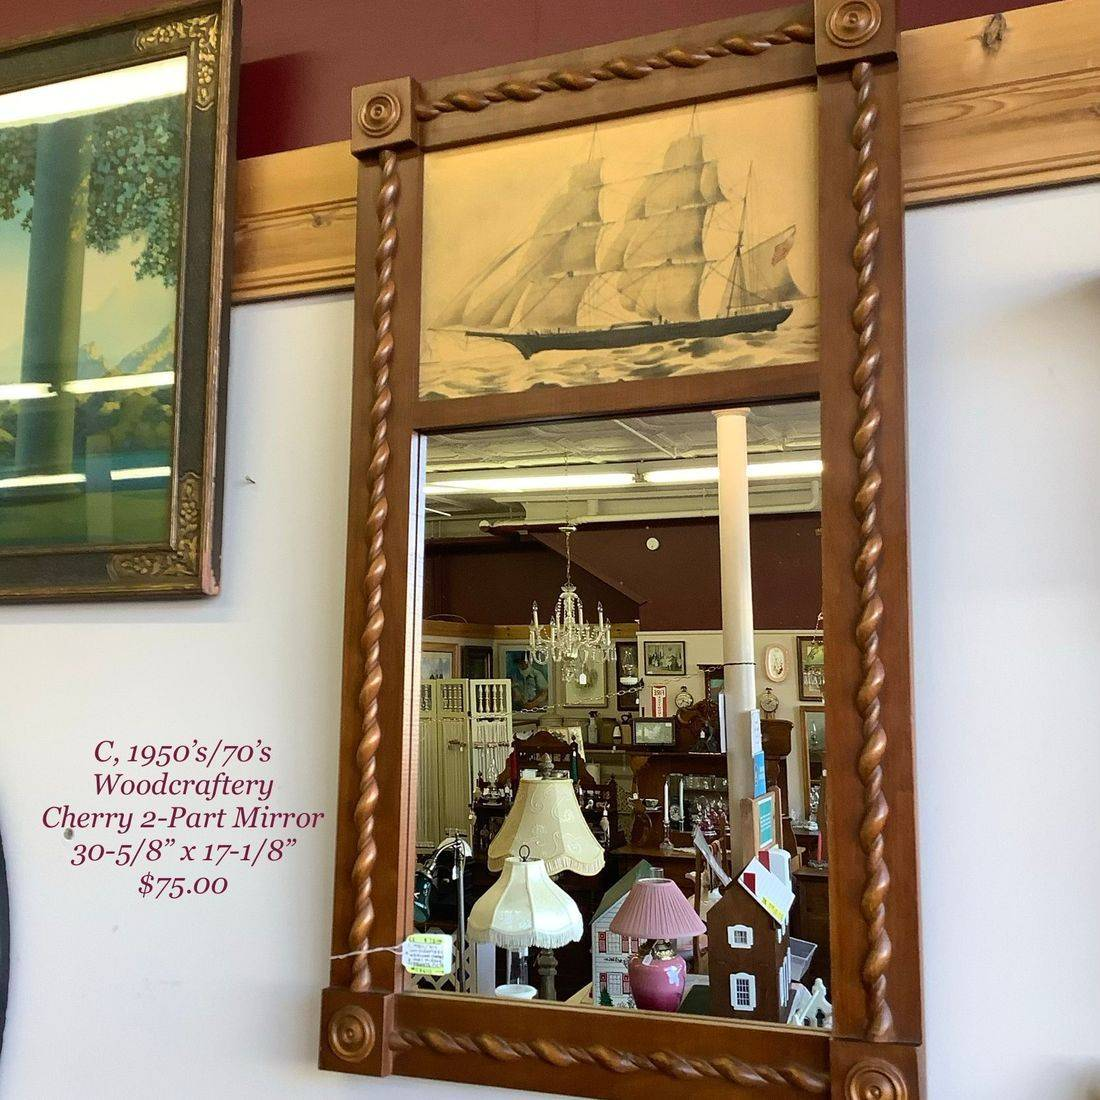 "C. 1950's/70's Woodcraftery Heirloom Cherry 2-Part Mirror w/Frigate Print  30-5/8"" x 17-1/8""  $75.00"